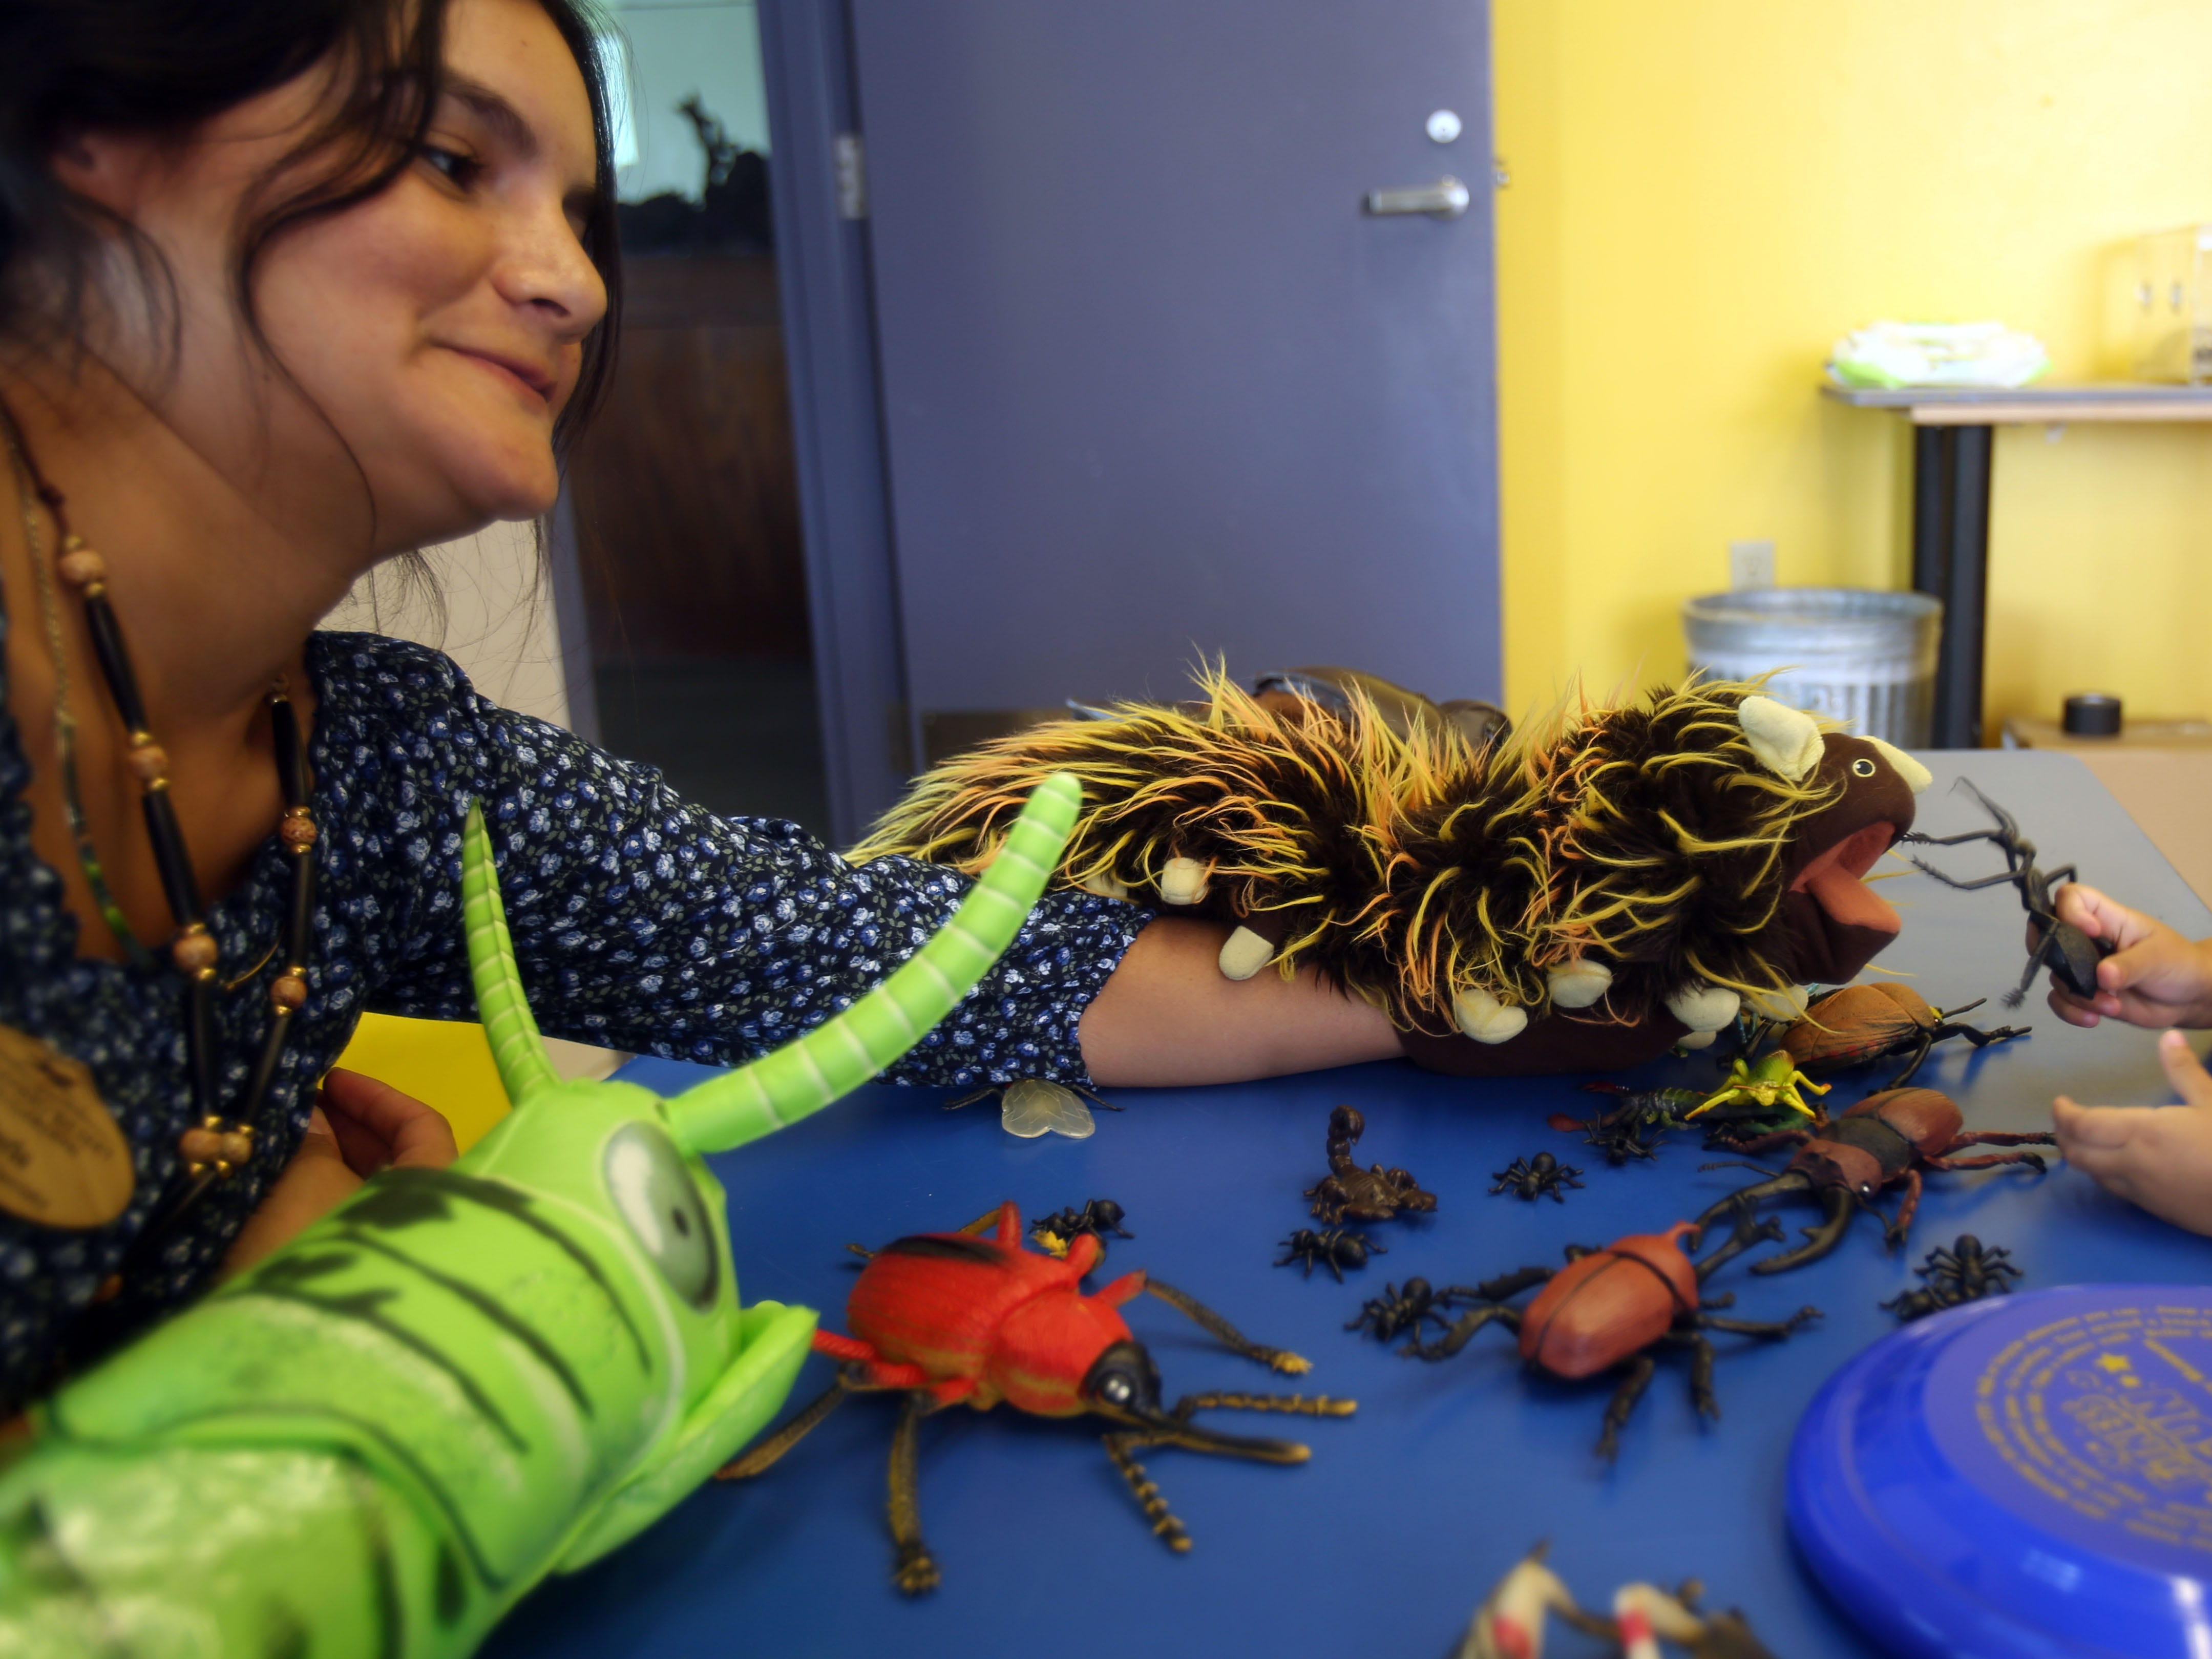 Emily Estes, 3, with plastic bugs at the Living Desert booth during the Nickelodeon's Worldwide Day of Play at the Children's Discovery Museum of the Desert on Saturday, September 28, 2018 in Palm Desert.